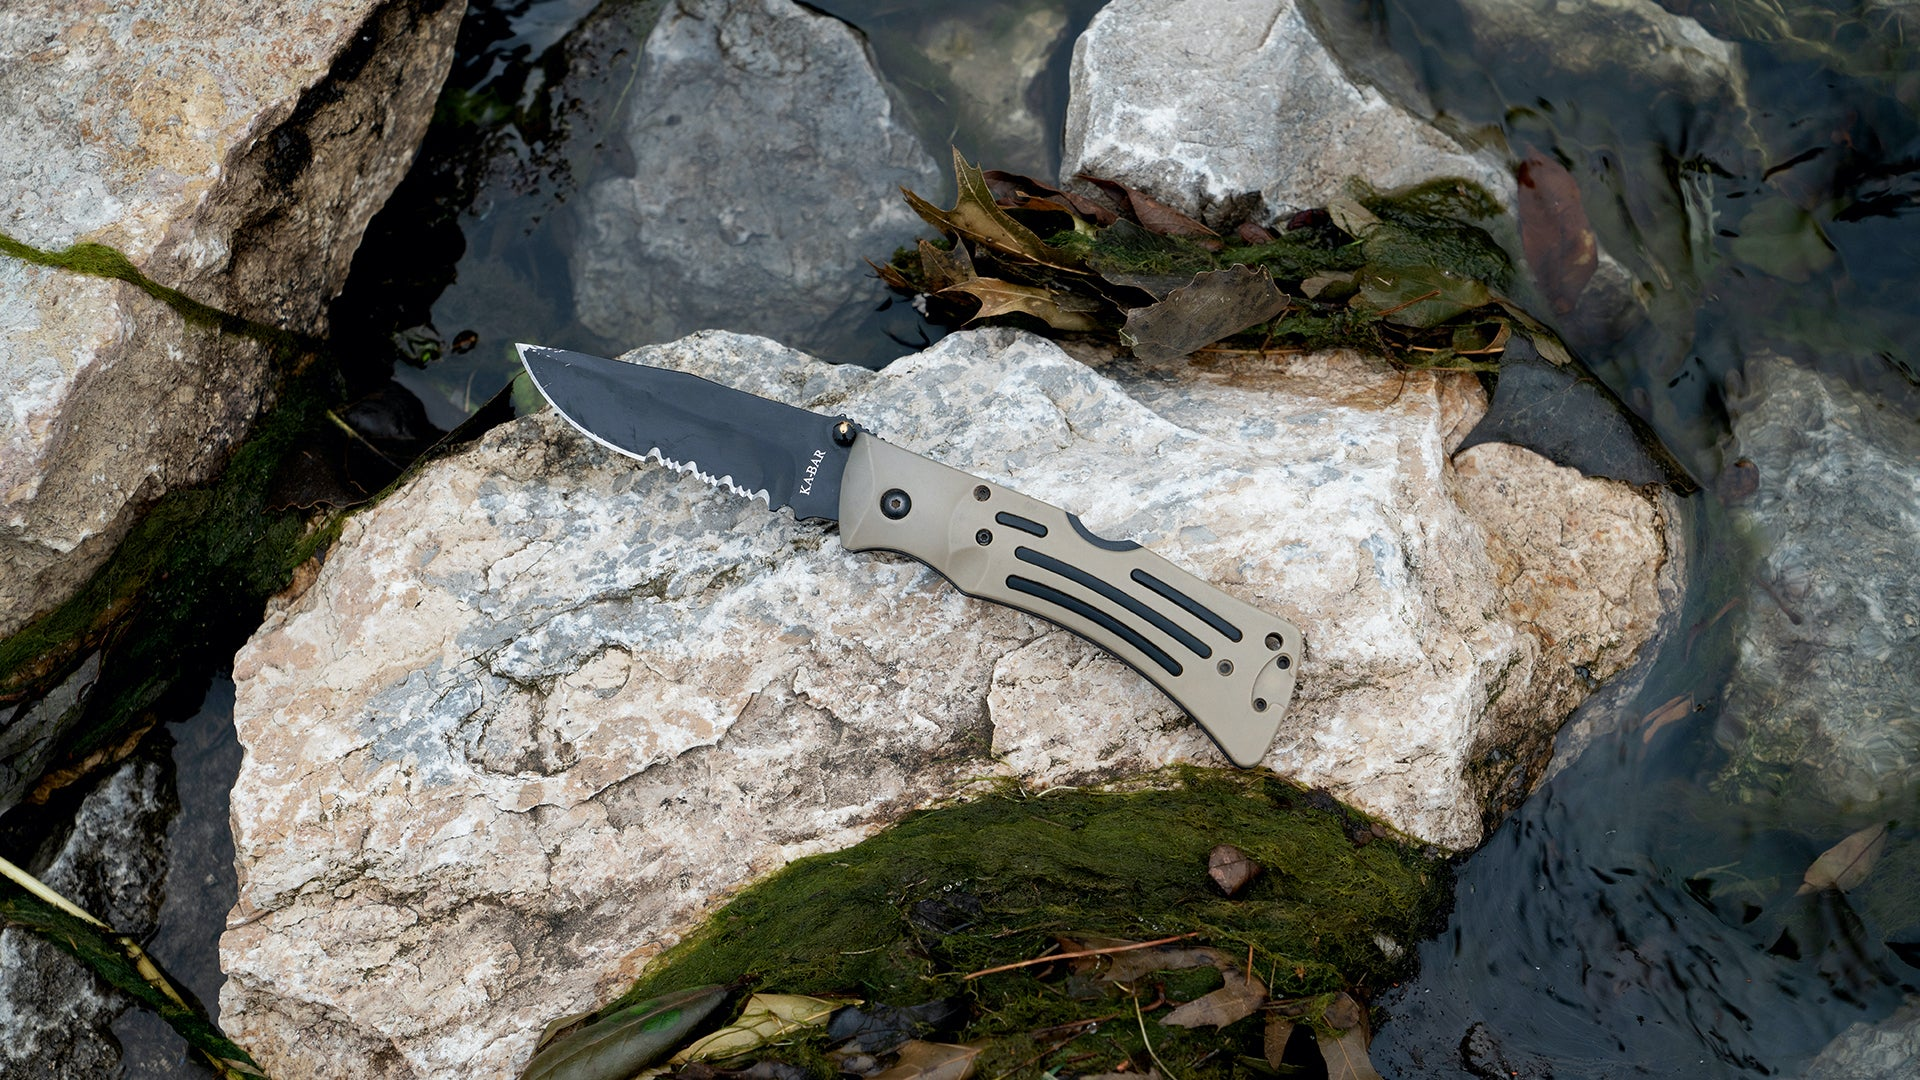 Review: Why the KA-BAR Mule will always be part of my EDC